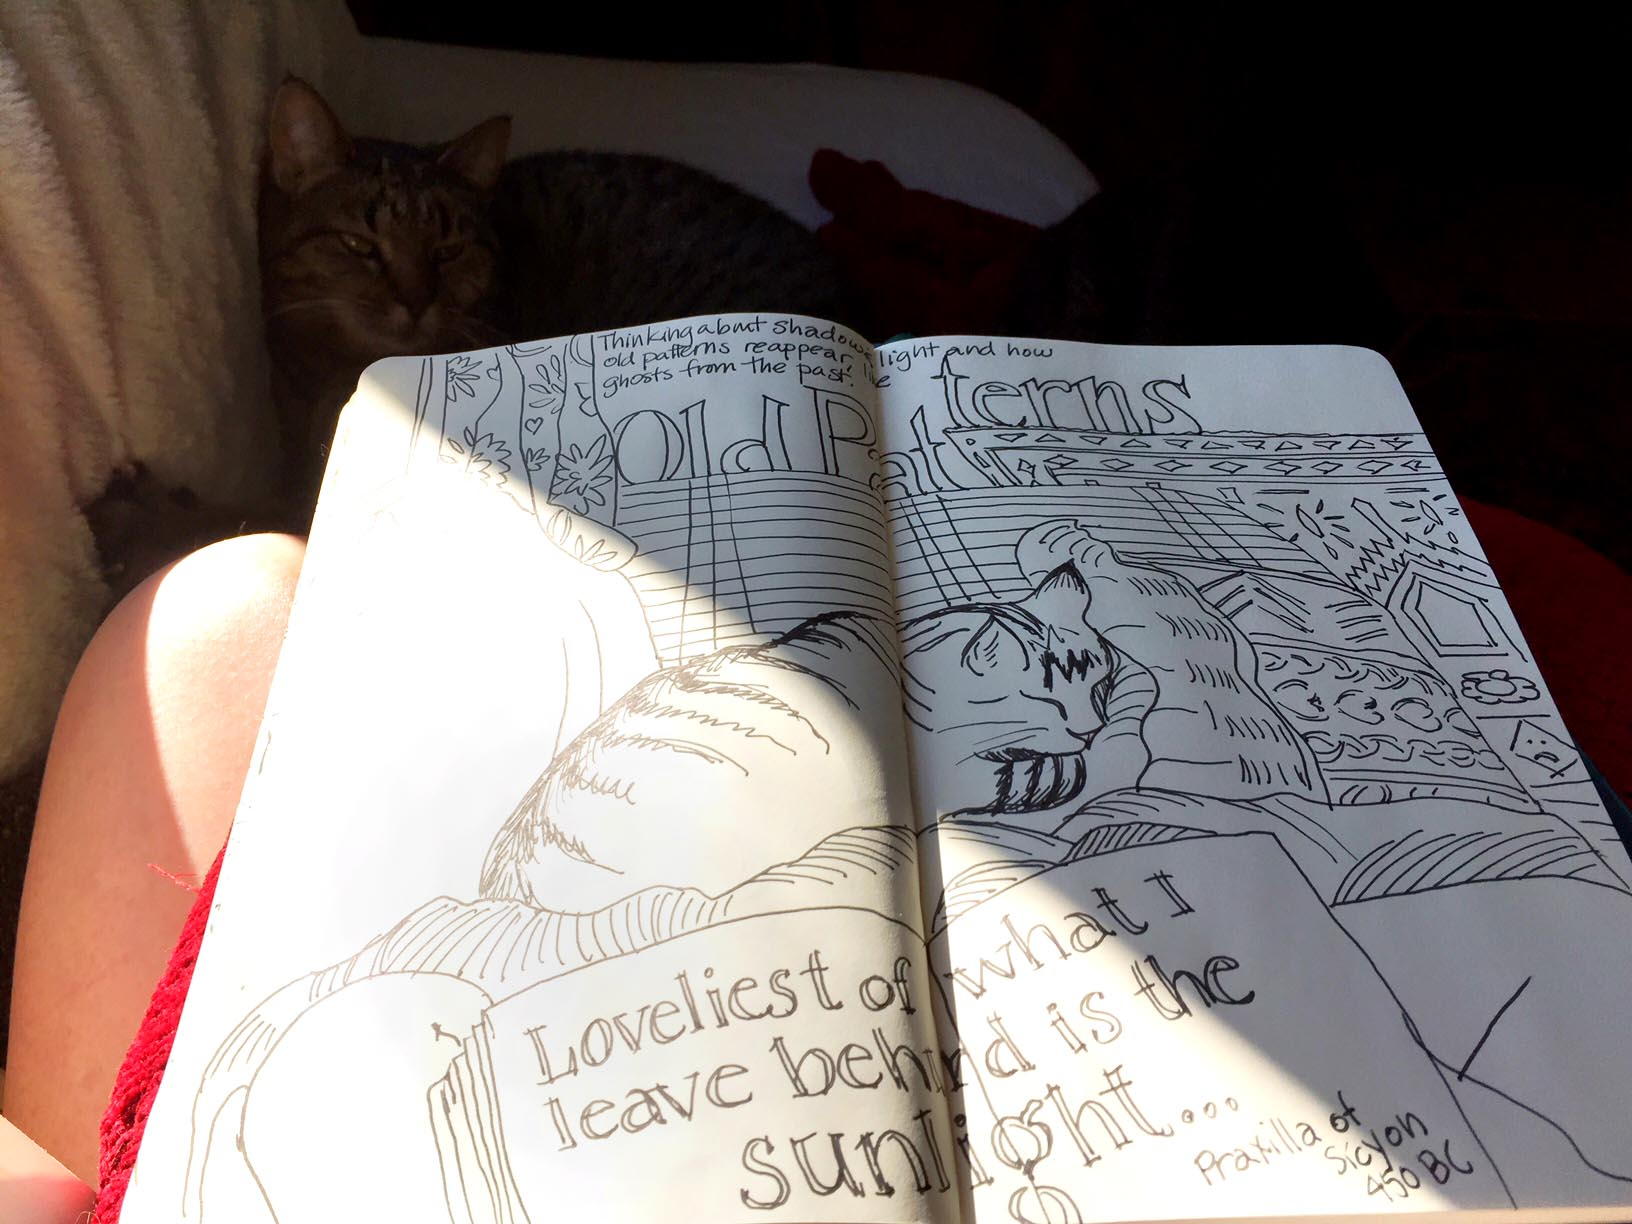 sunny day with image of sketchbook showing a drawing of a cat